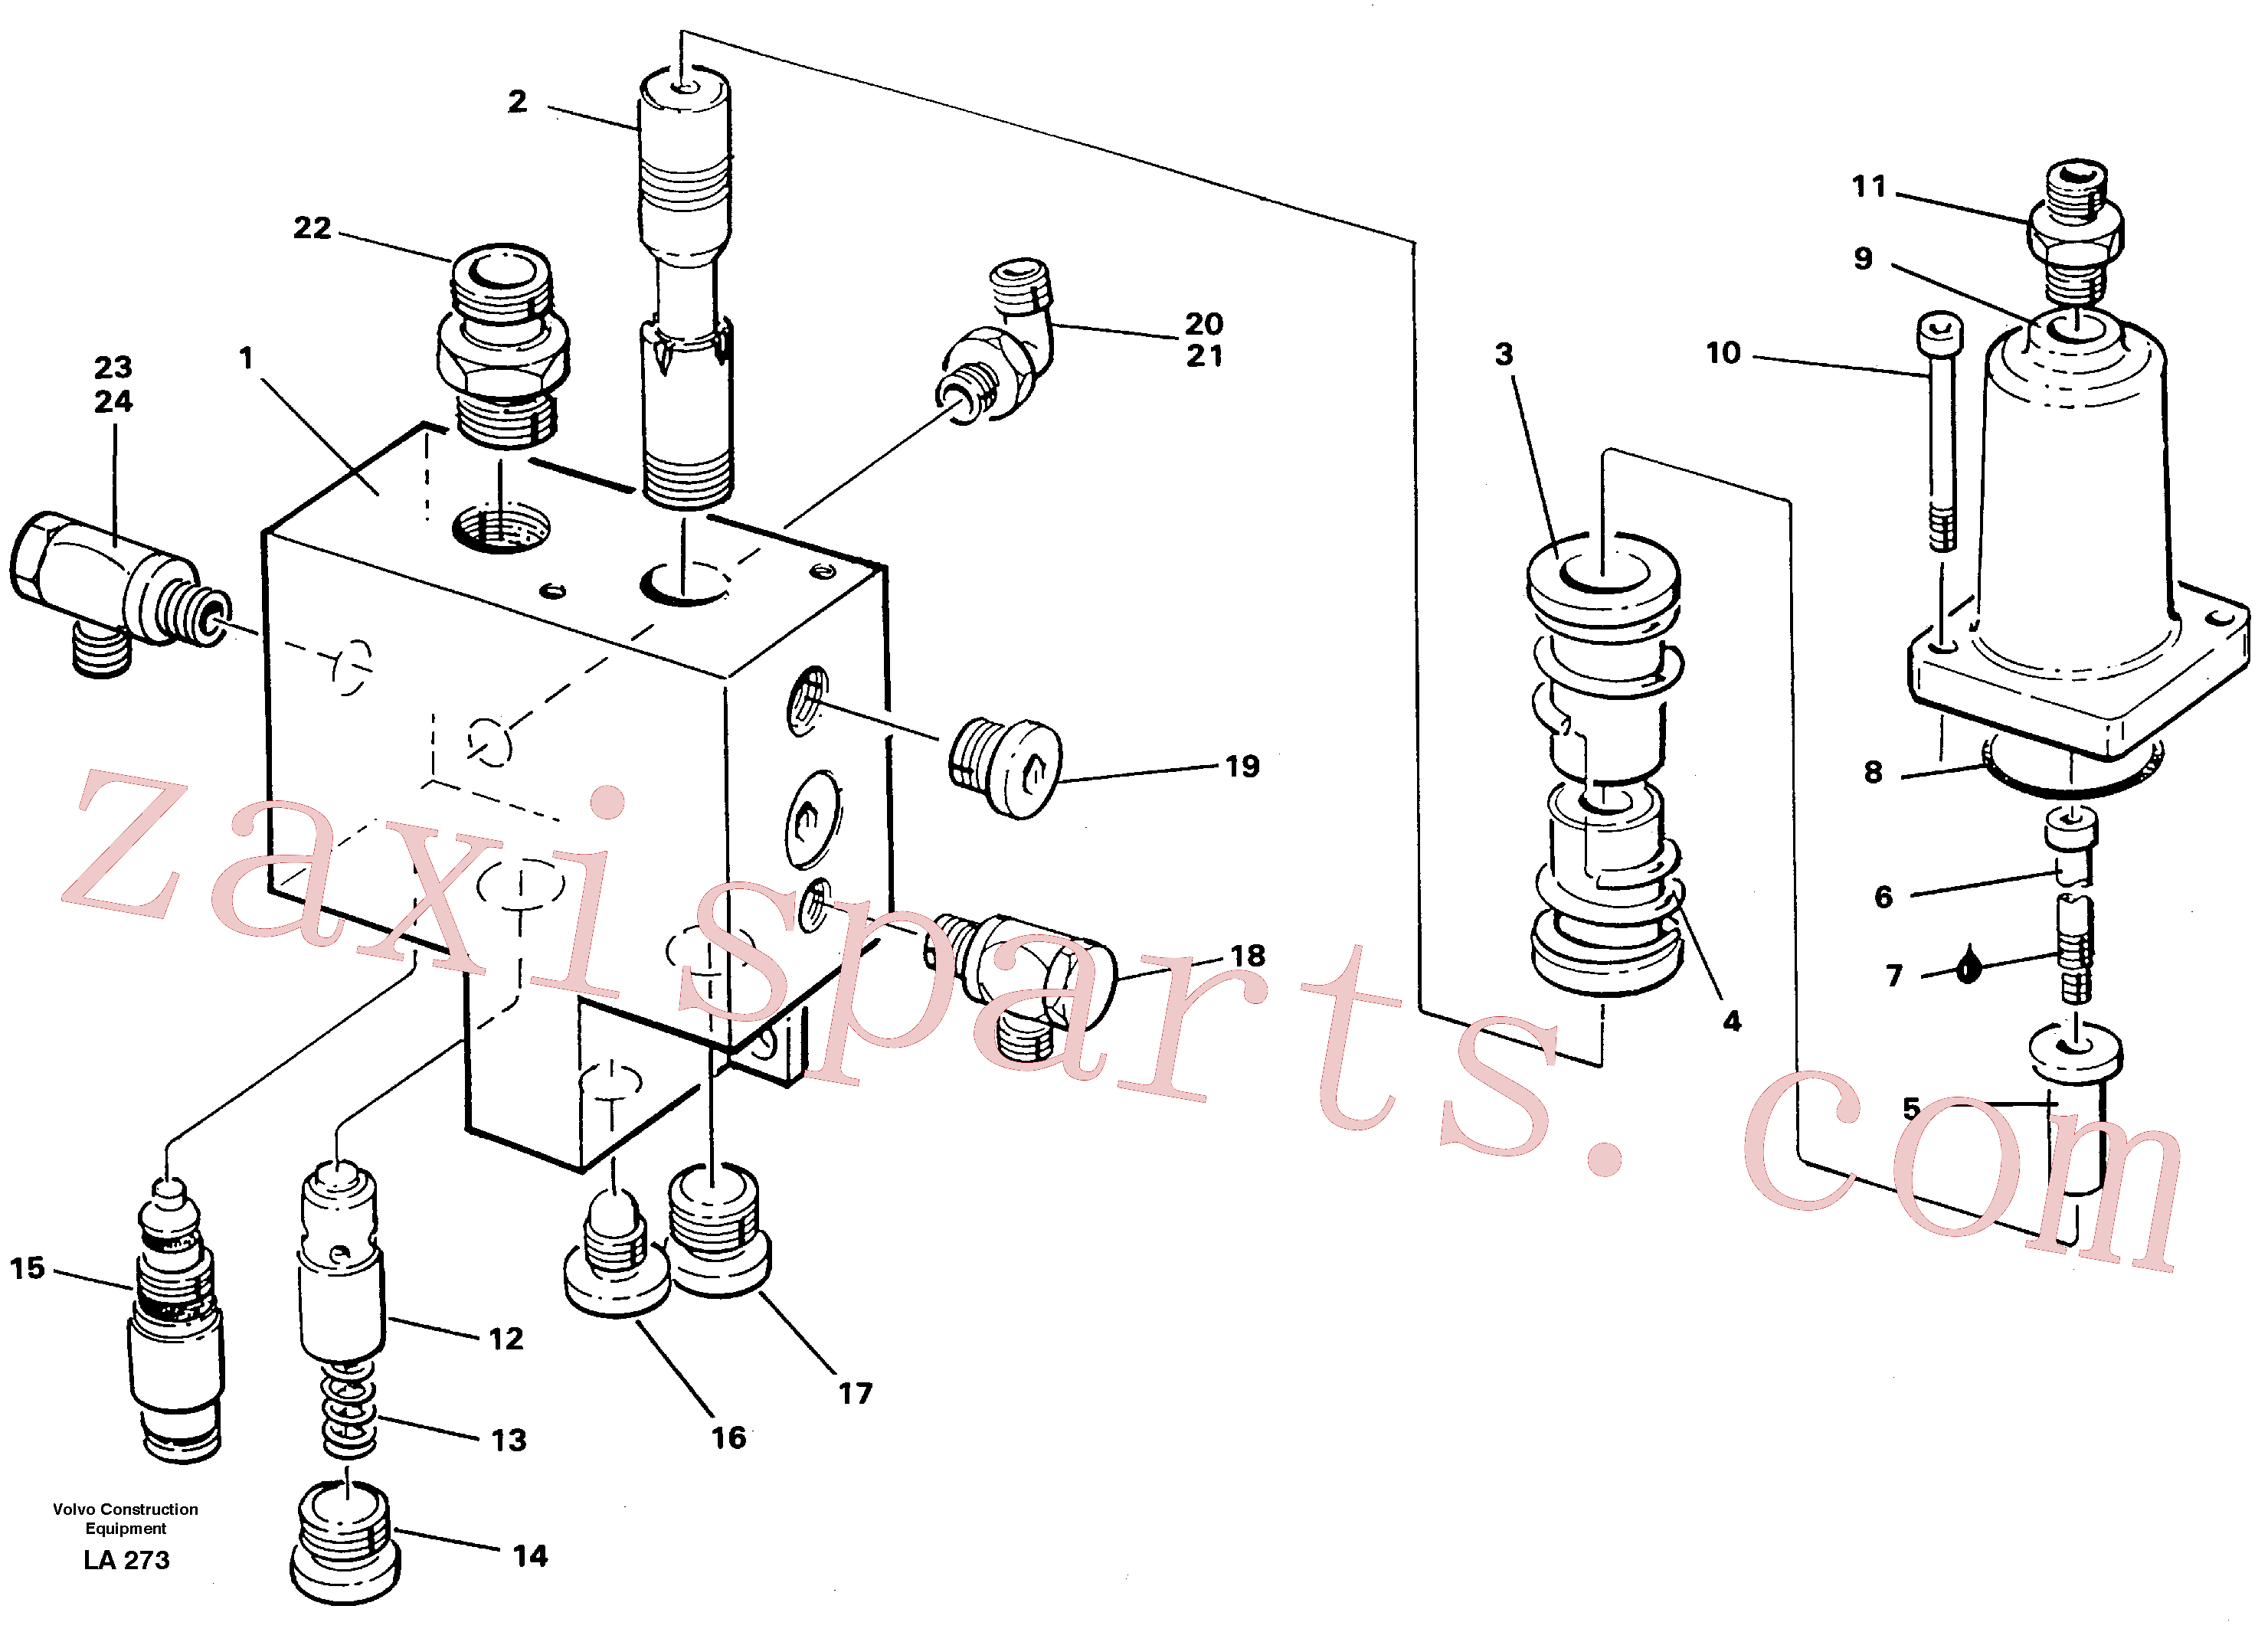 VOE14342428 for Volvo Hose rupture valve, boom cylinder(LA273 assembly)